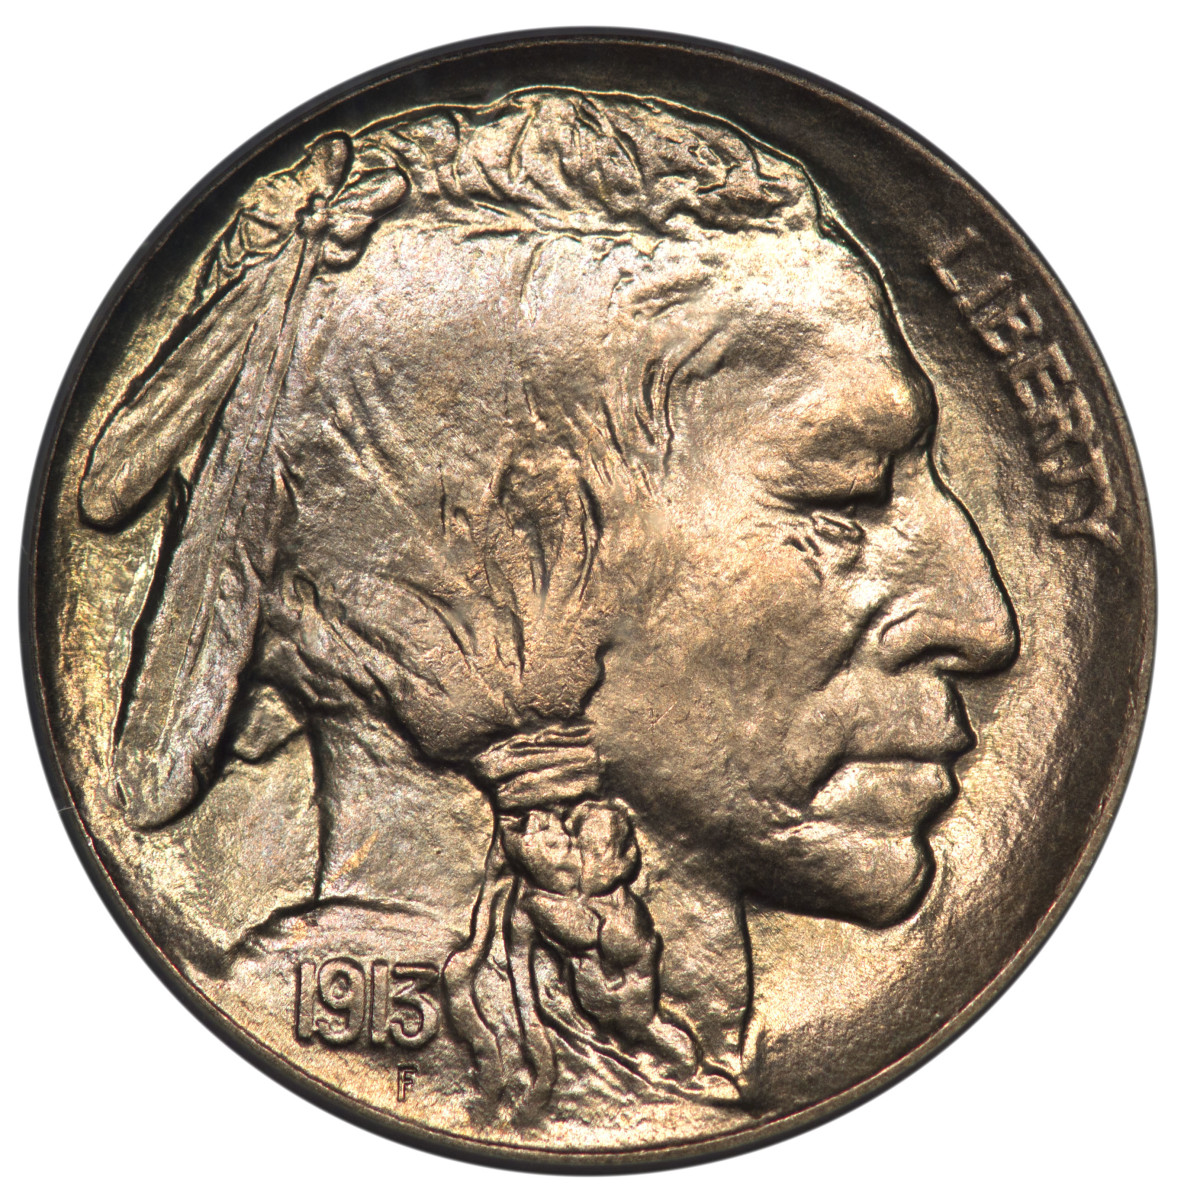 A 1913 F 'Liberty' Indian Head Nickle